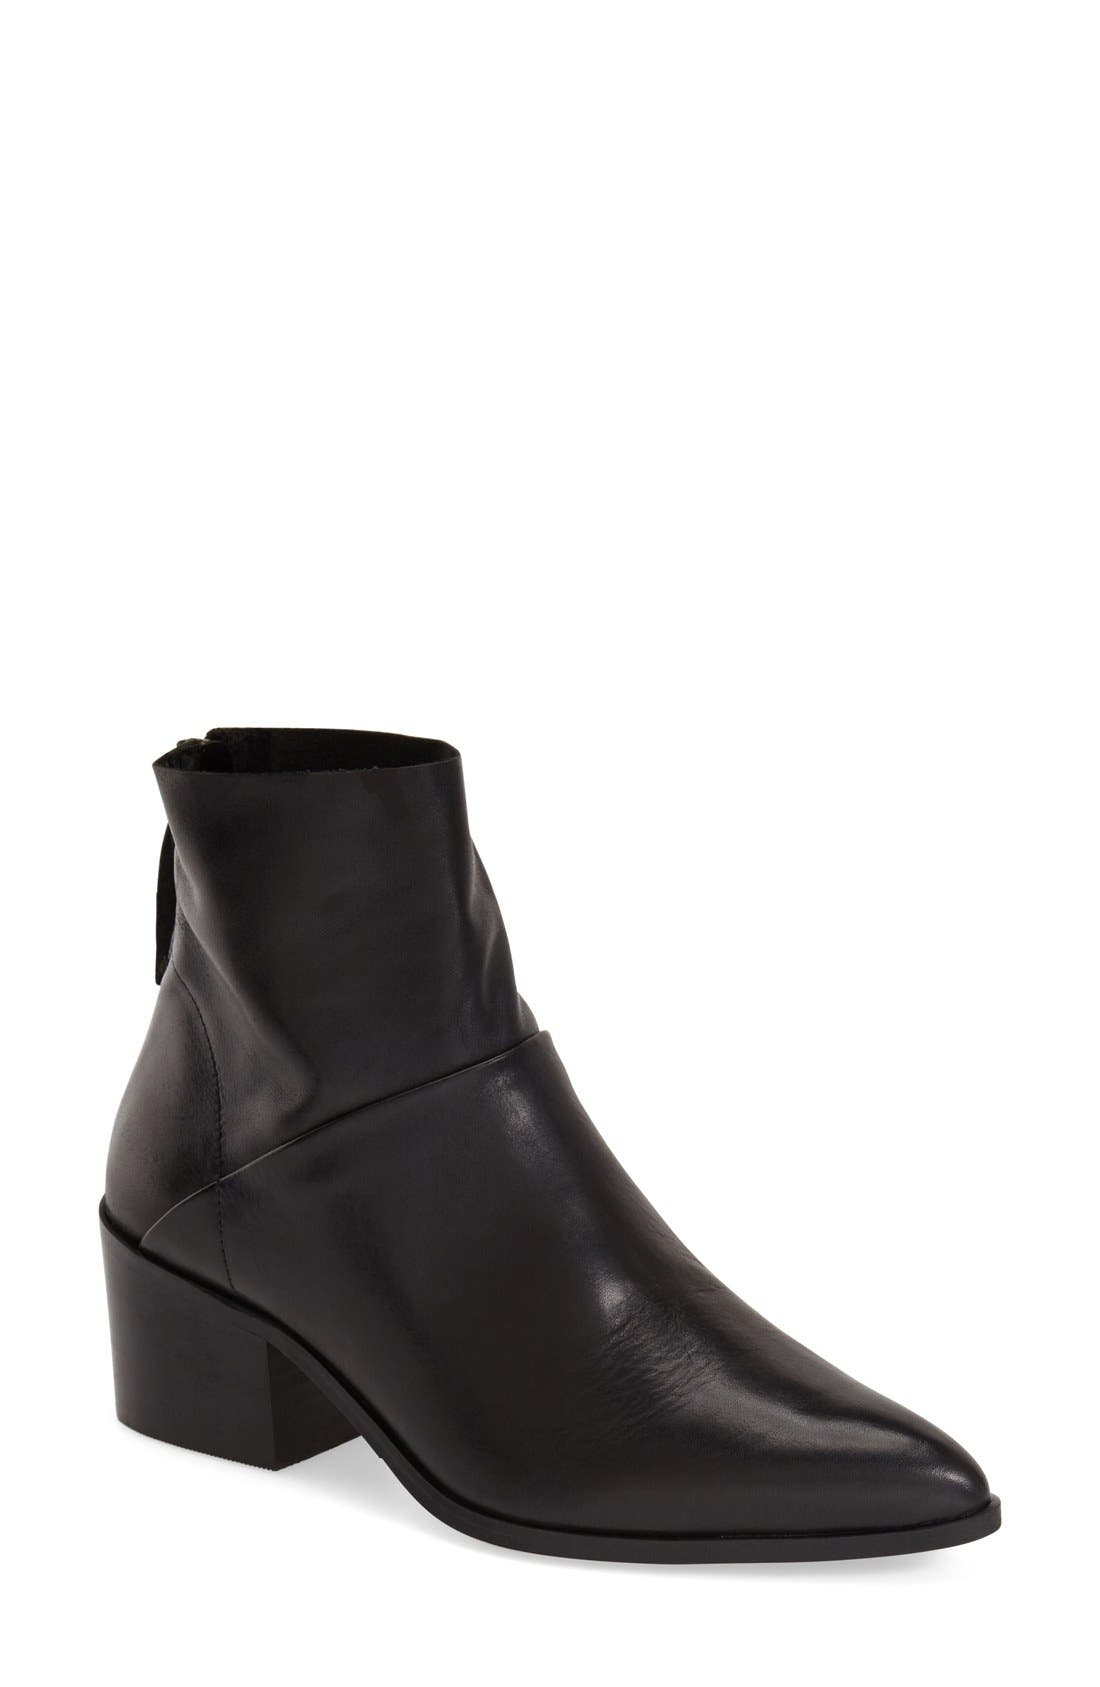 Alternate Image 1 Selected - Topshop 'Midnight' Pointy Toe Boot (Women)